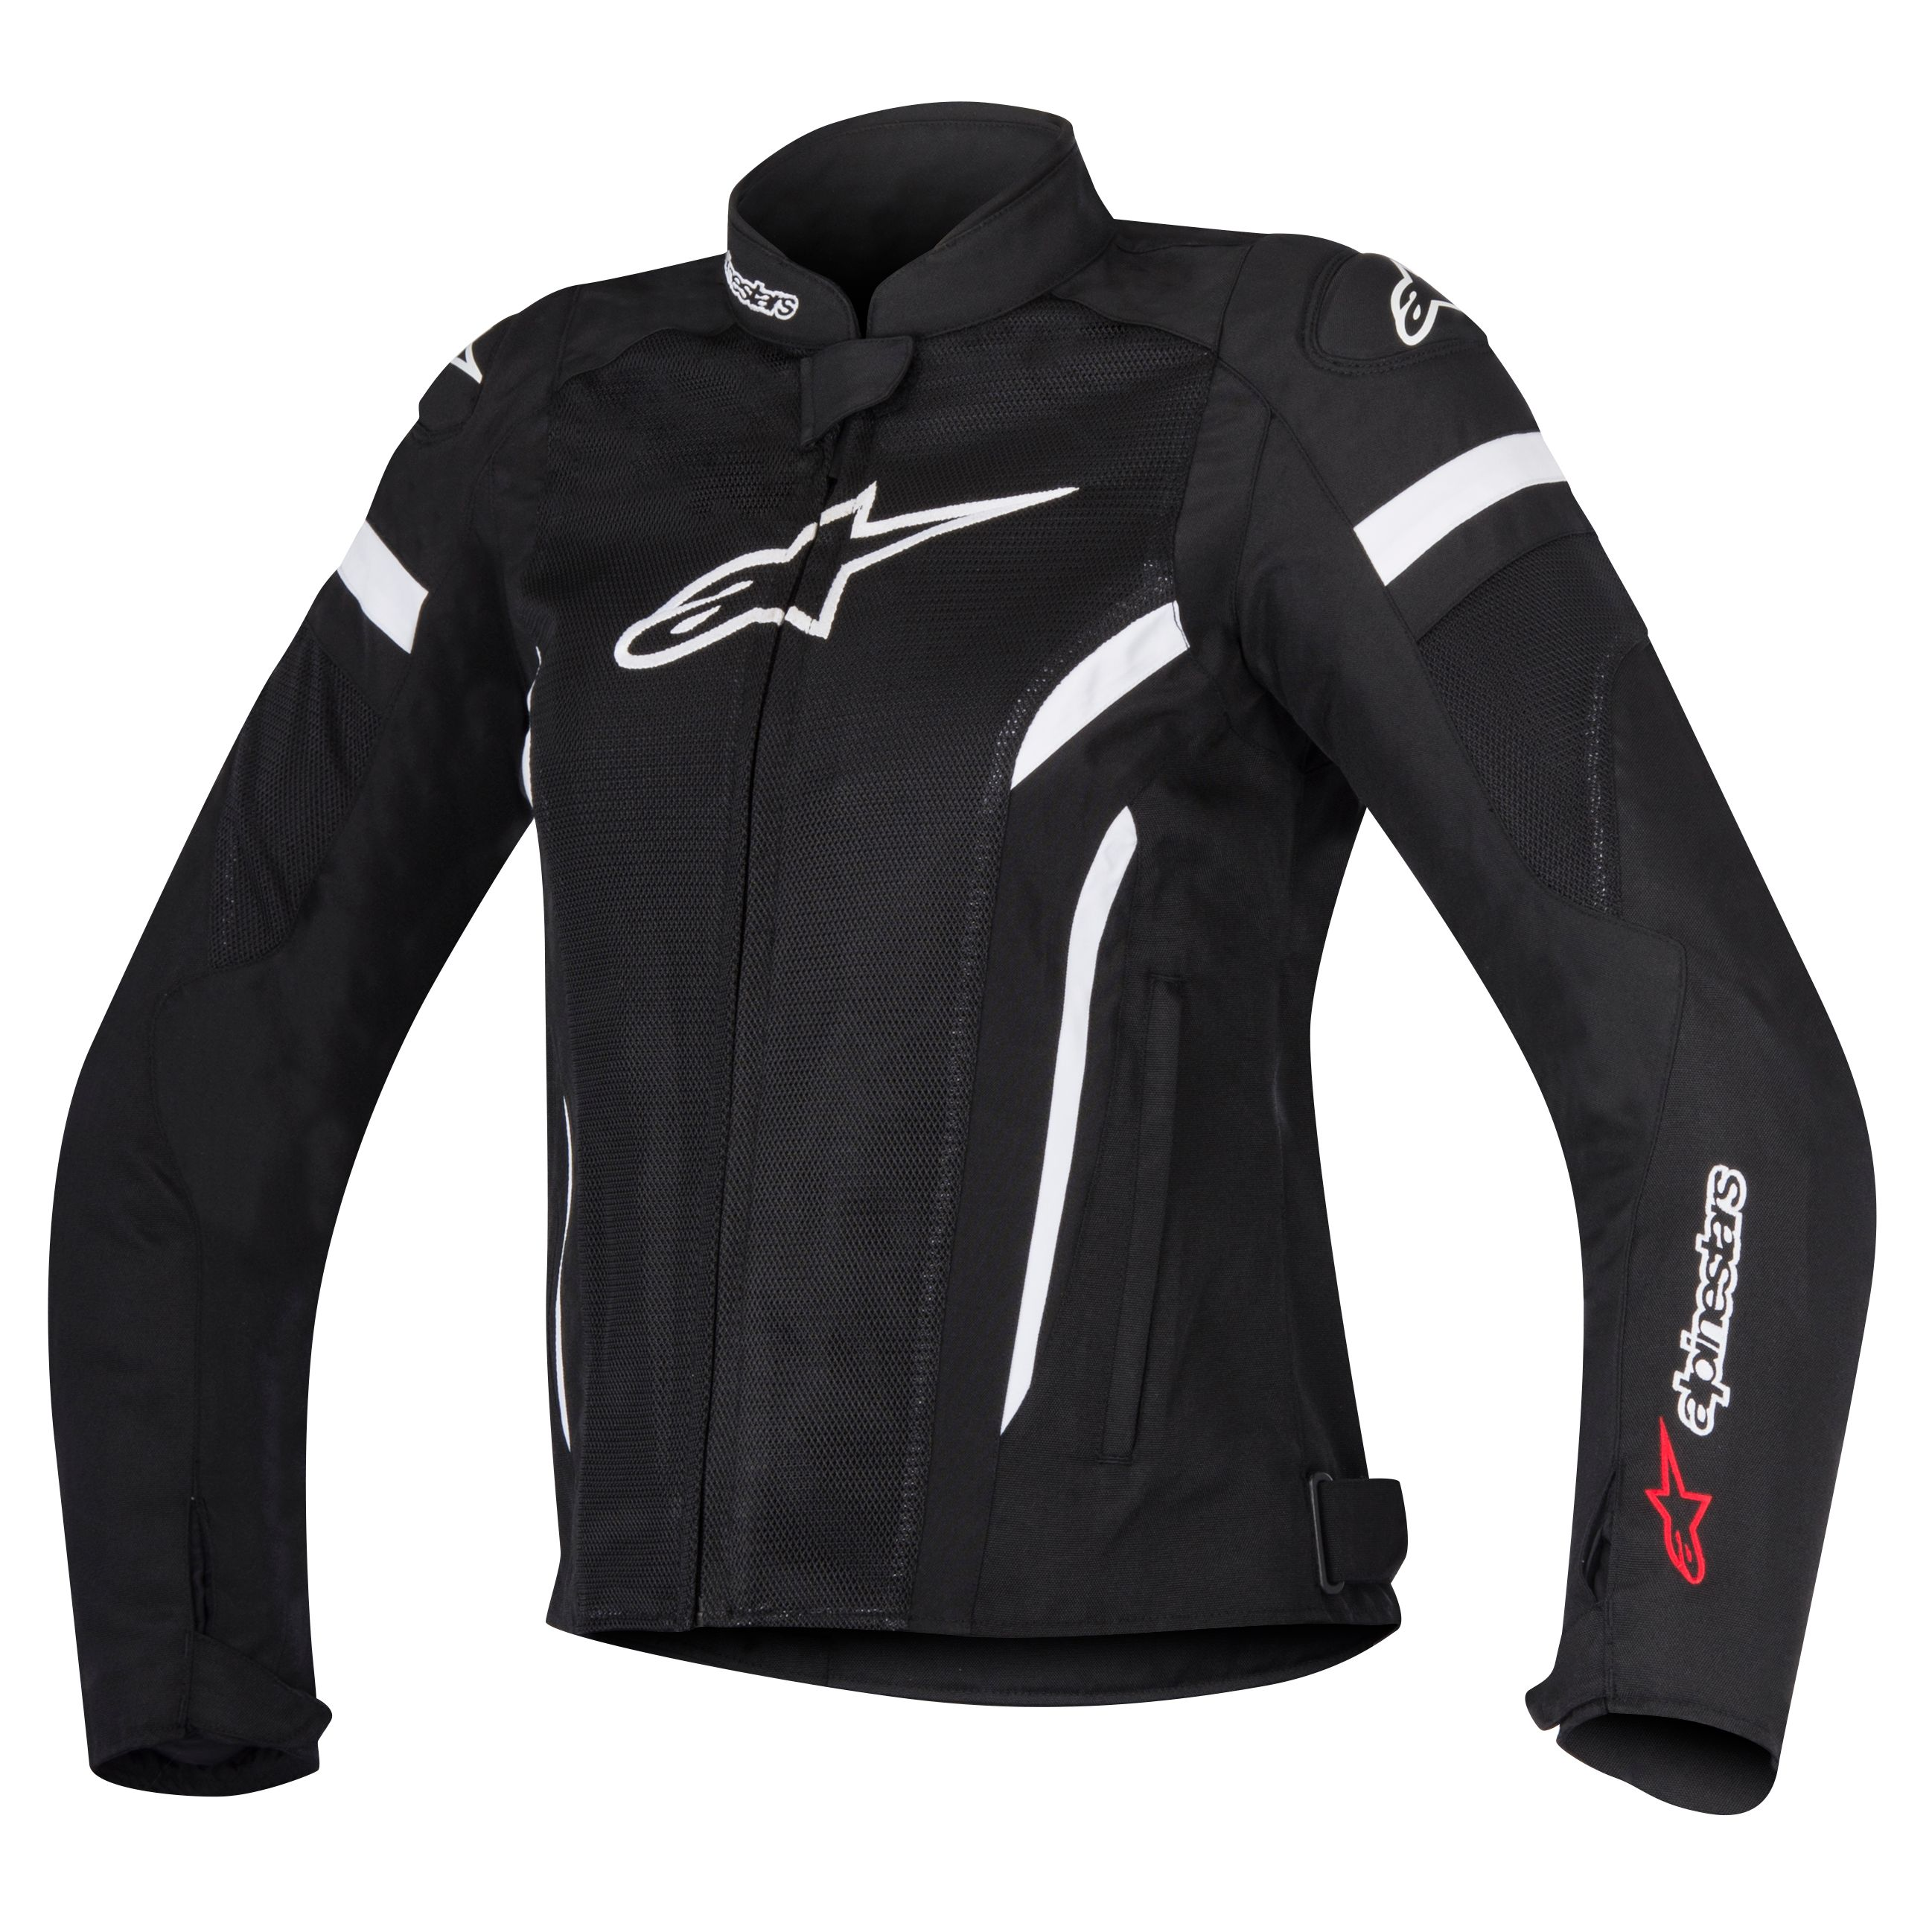 blouson alpinestars stella t gp plus r v2 air equipement du pilote access. Black Bedroom Furniture Sets. Home Design Ideas